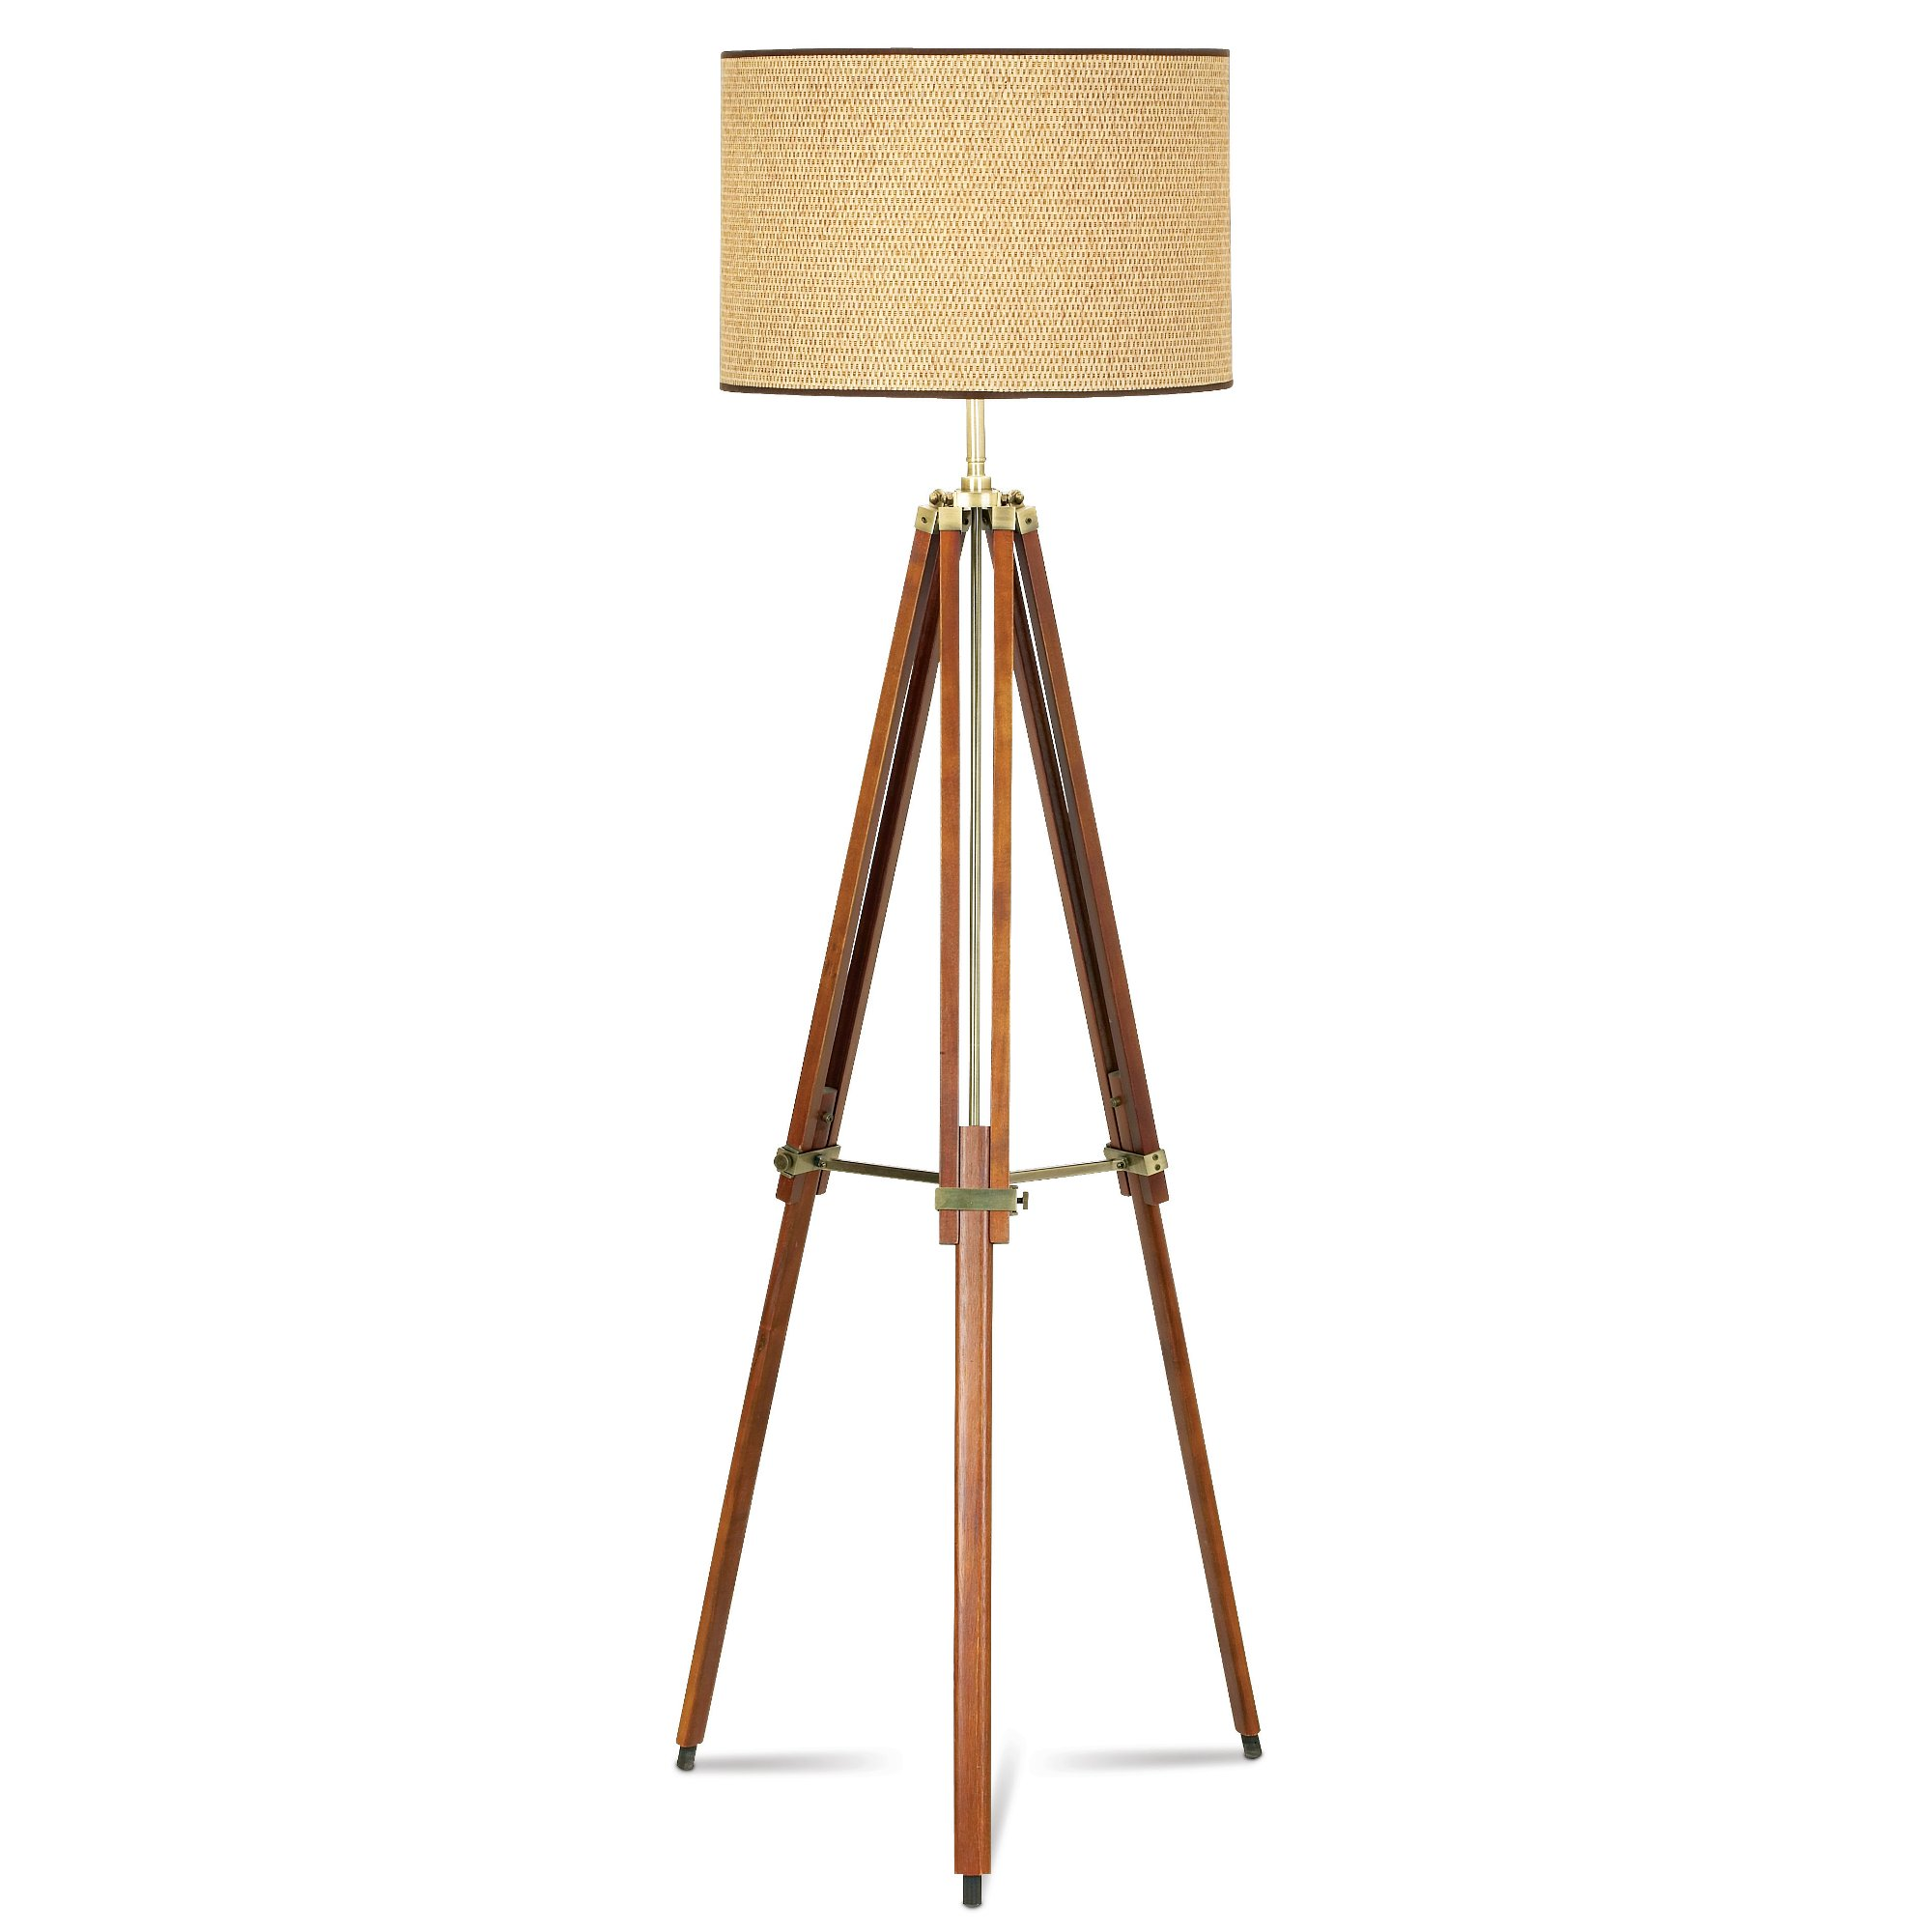 Walnut Tripod Floor Lamp